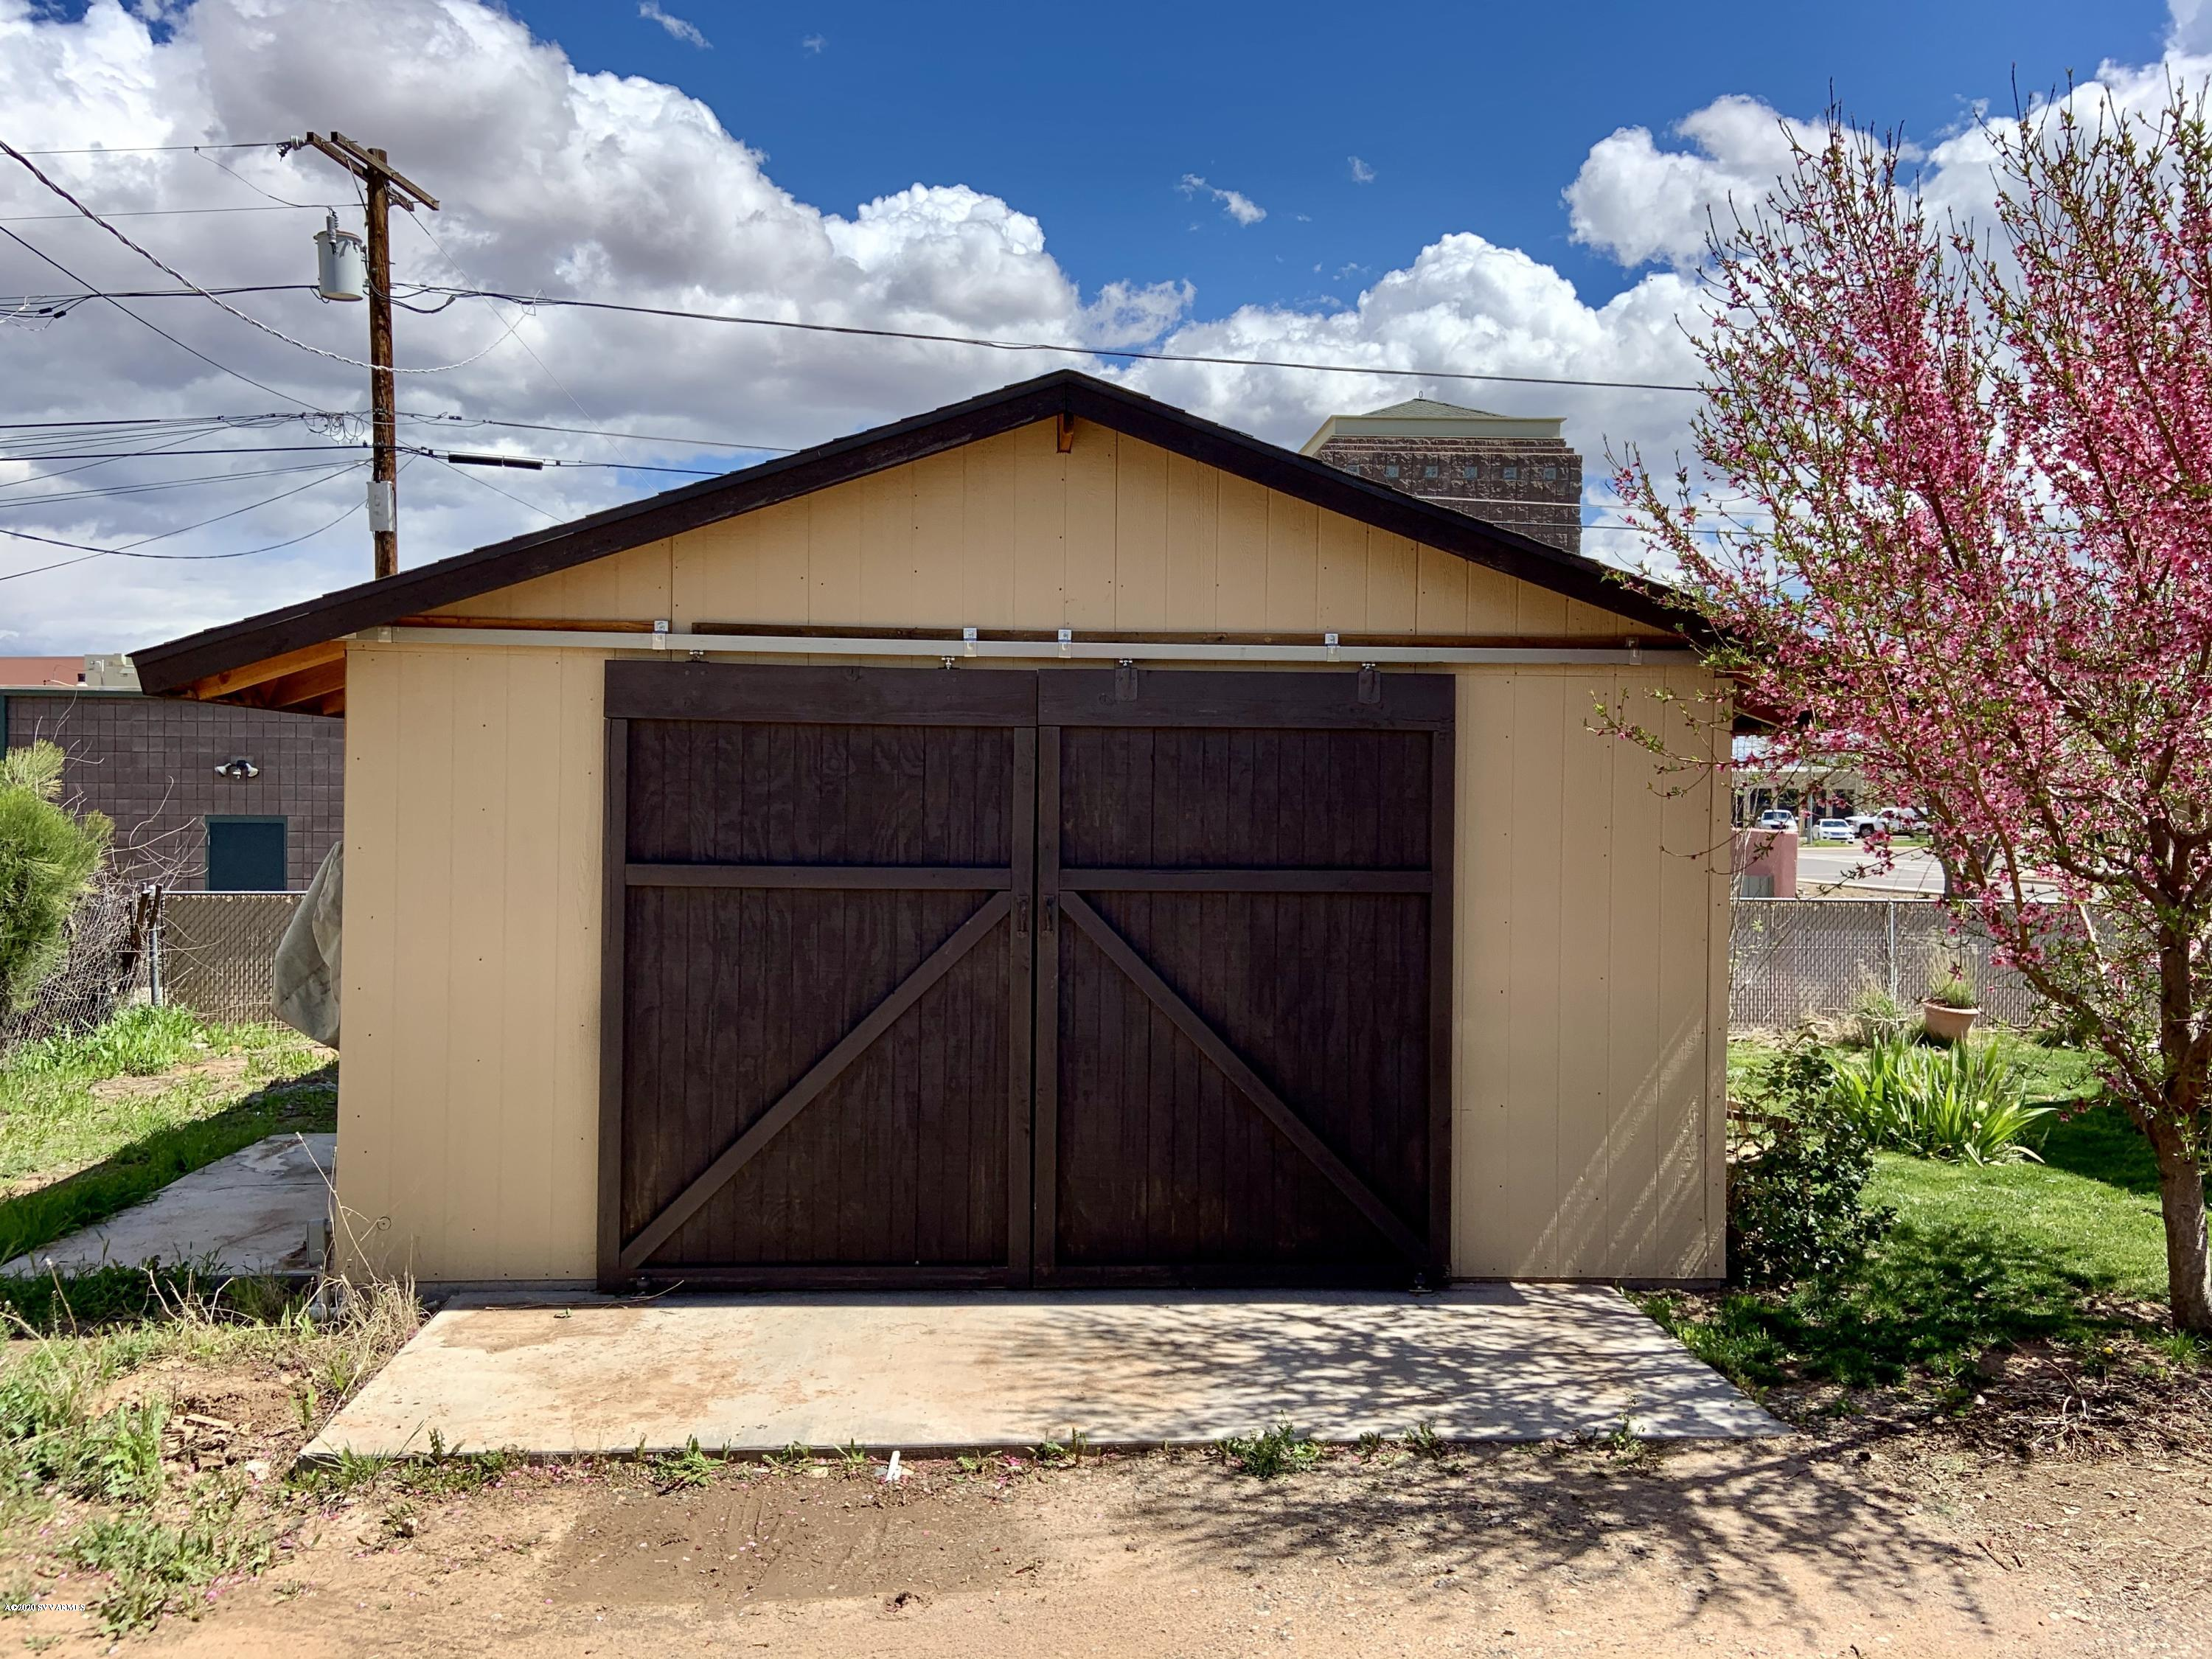 1506 E Birch St Cottonwood, AZ 86326